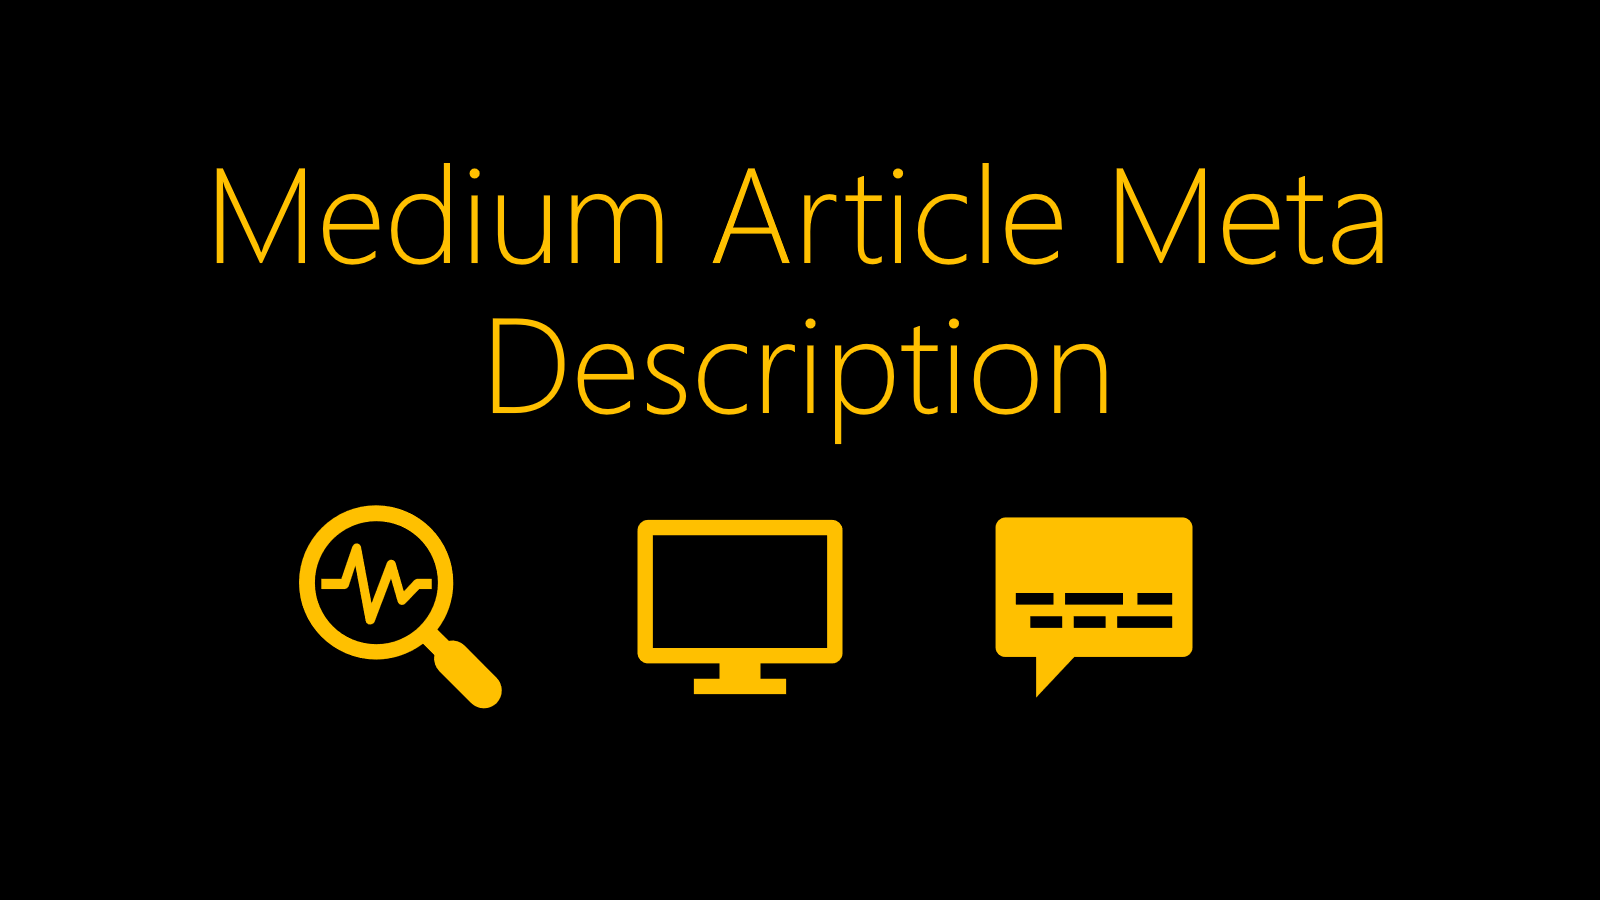 medium article meta description, customize medium meta description, medium article seo, medium meta description, medium seo